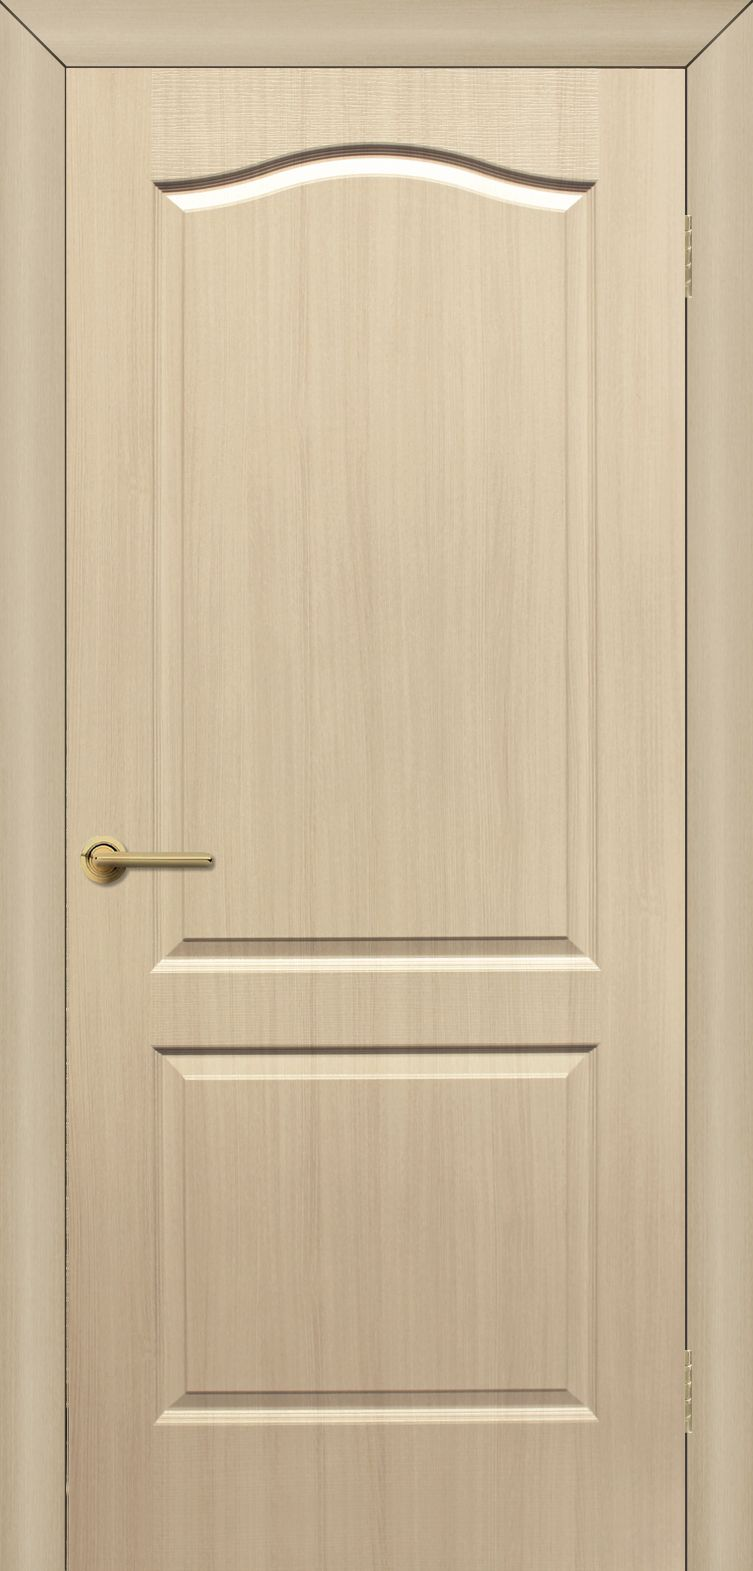 Beige Masonite Door